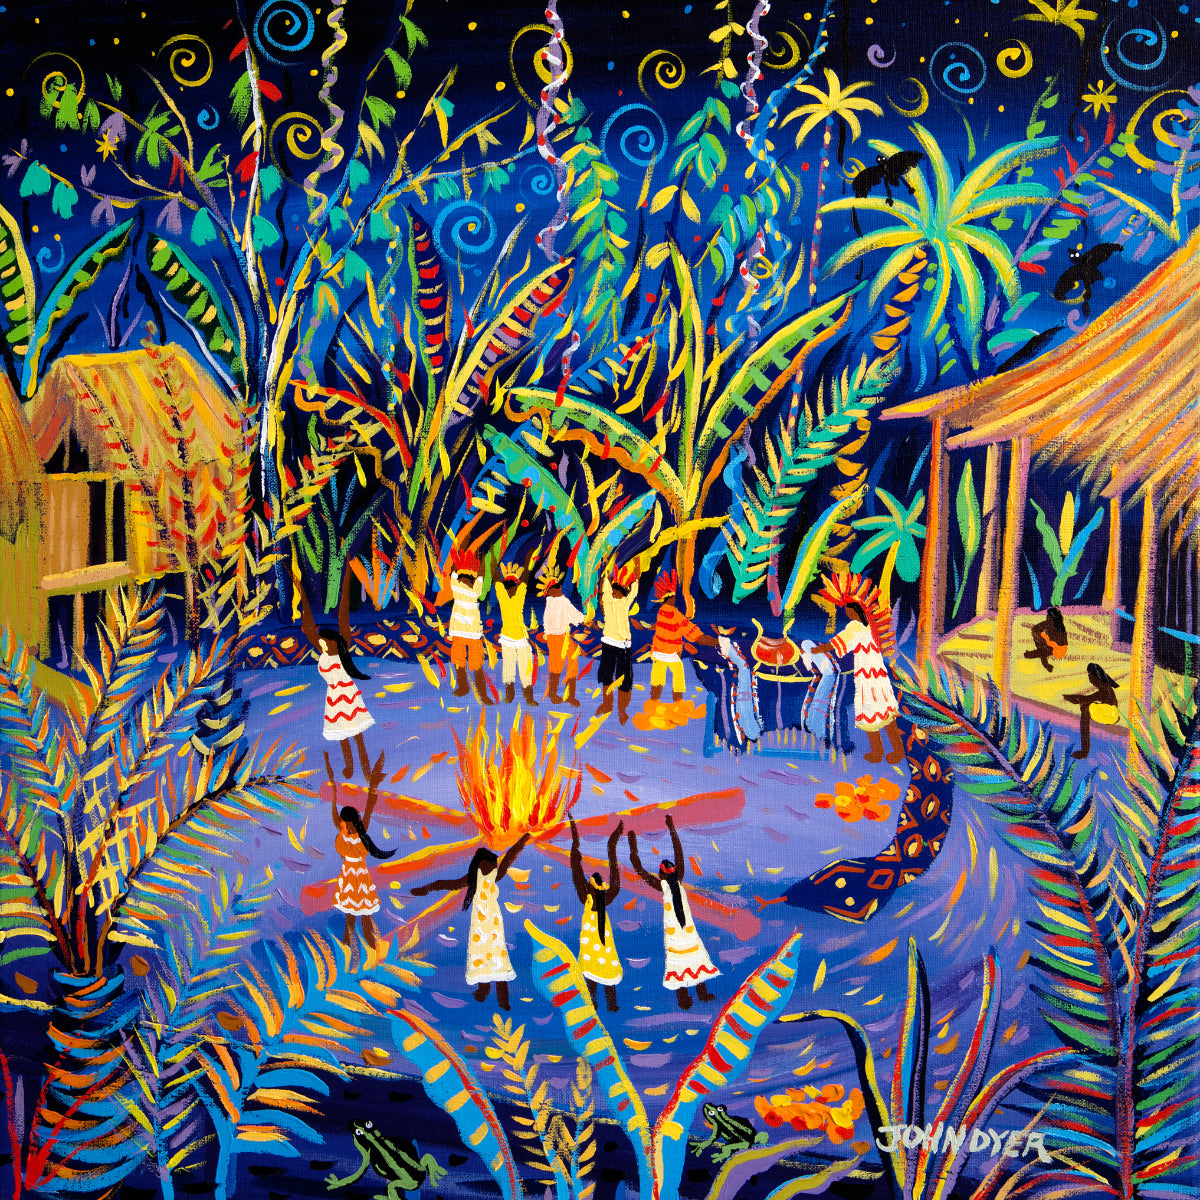 John Dyer Painting. Yawanawá Tribal Ayahuasca Ceremony, Amazon Rainforest